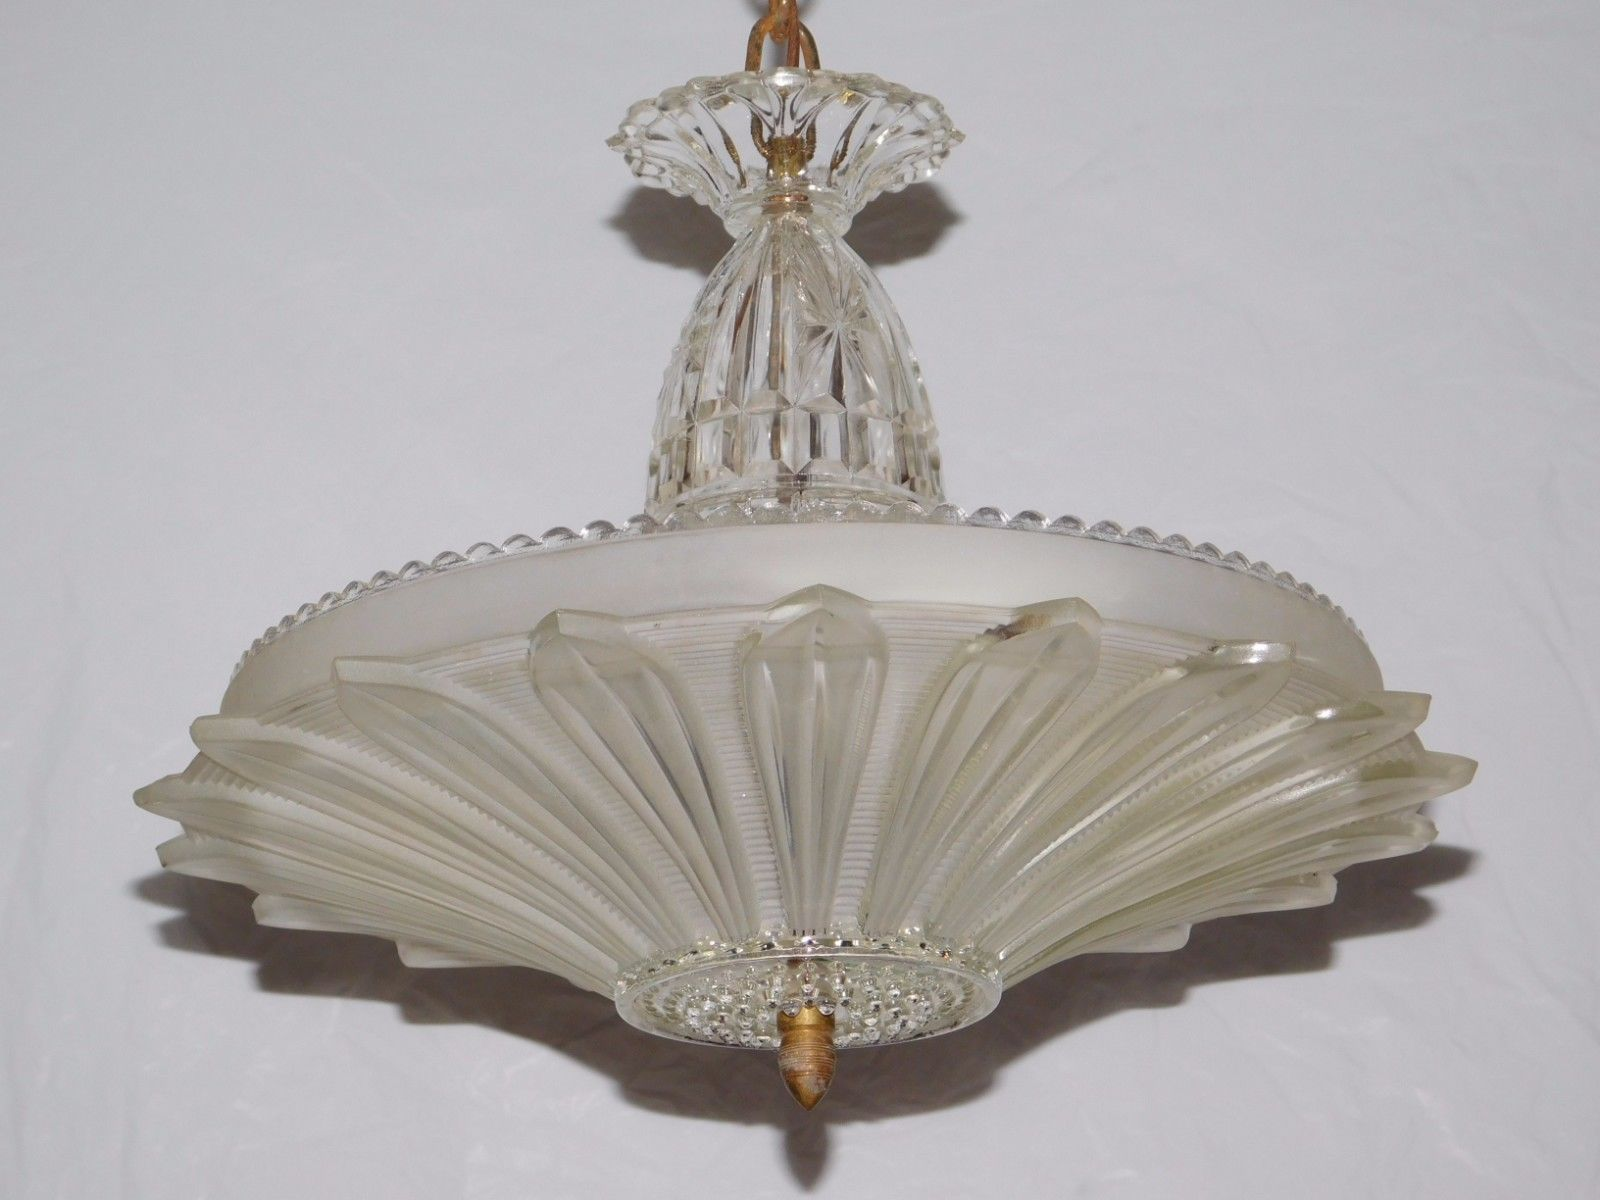 Light Fixtures For Bedrooms Details About Art Deco Sunflower Light Fixture Chandelier Glass